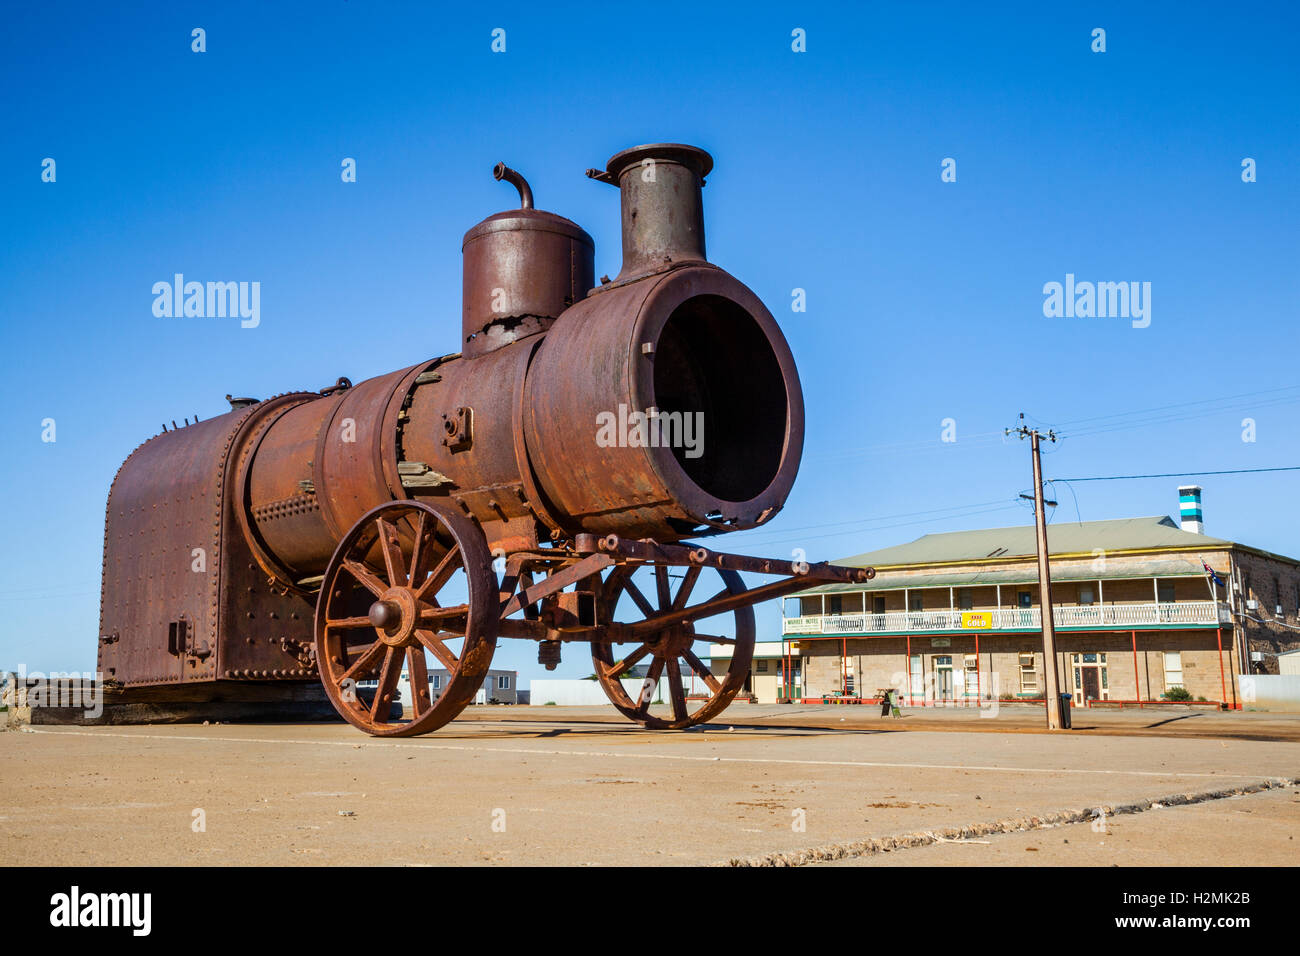 old steam engine at Marree Hotel, South Australia - Stock Image